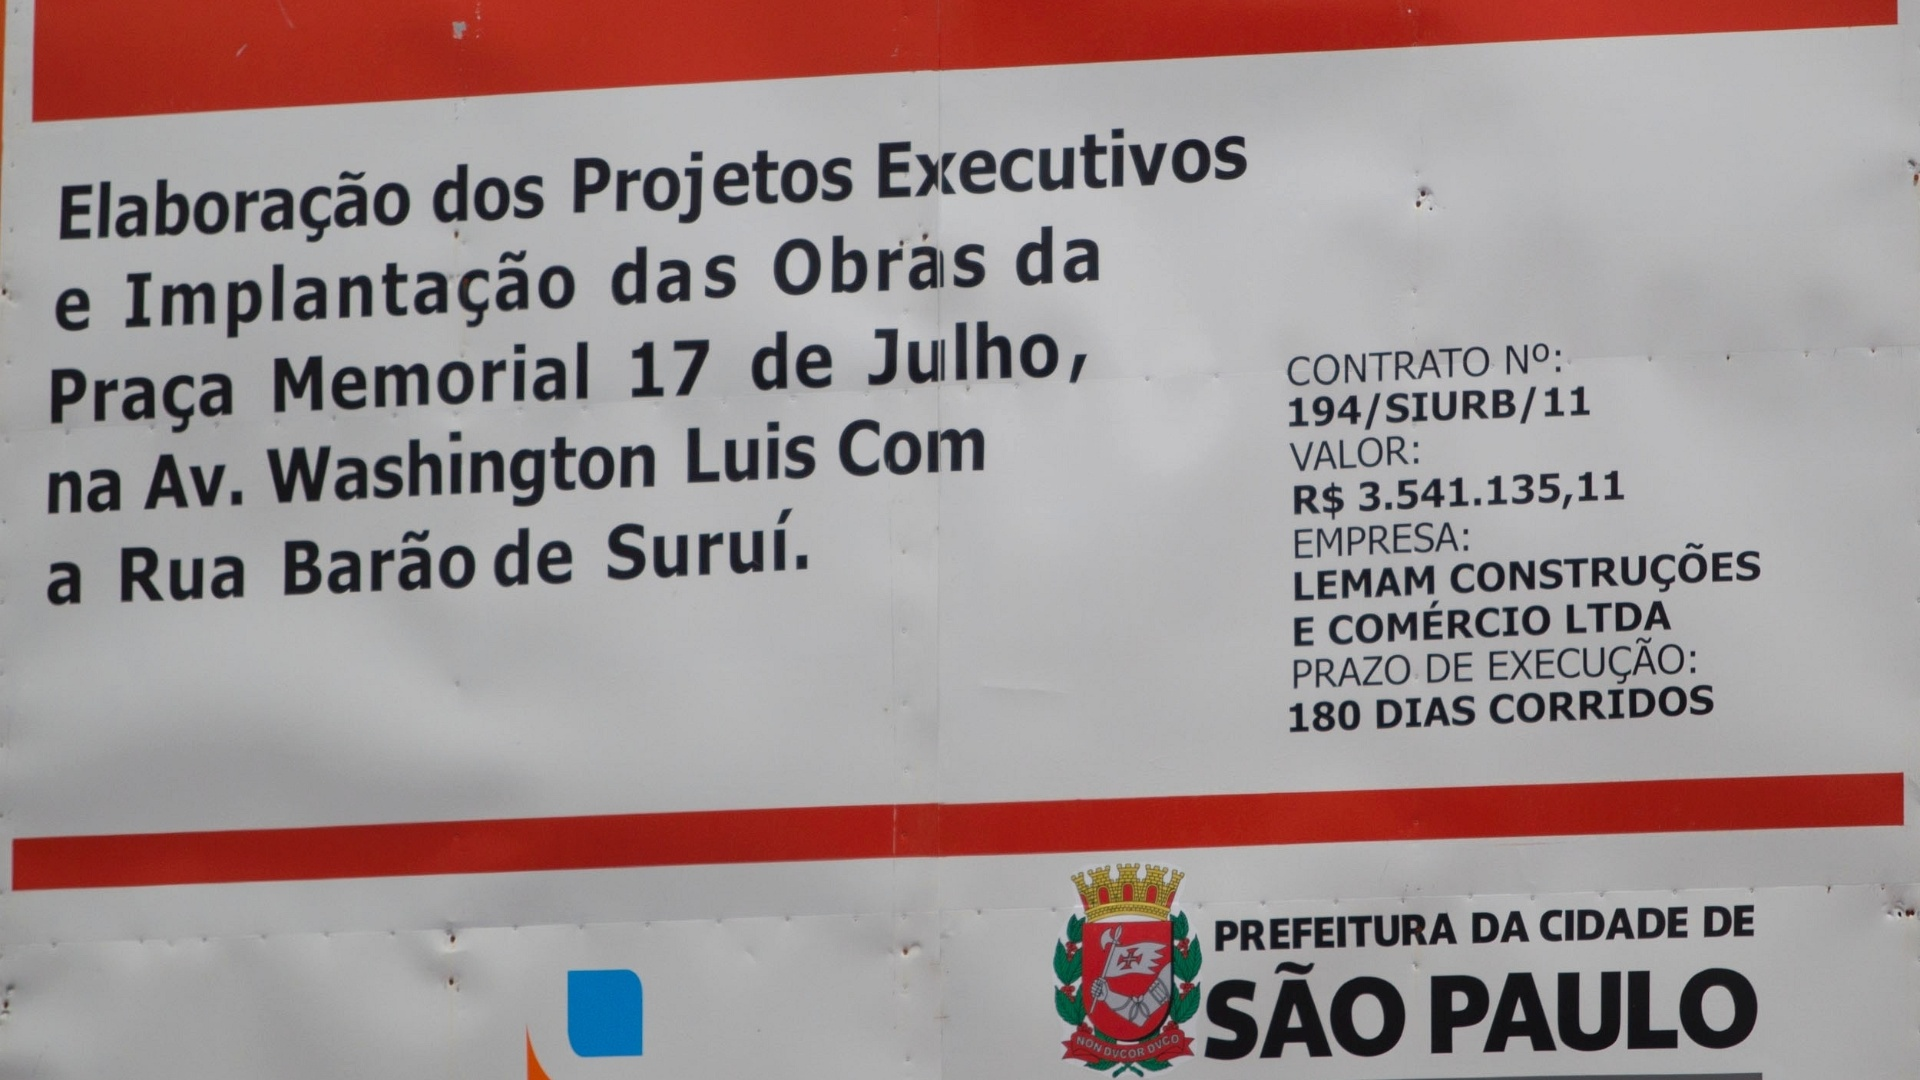 Placa indica o valor da obra para construo da praa em homenagem s vitimas do acidente da TAM em 2007